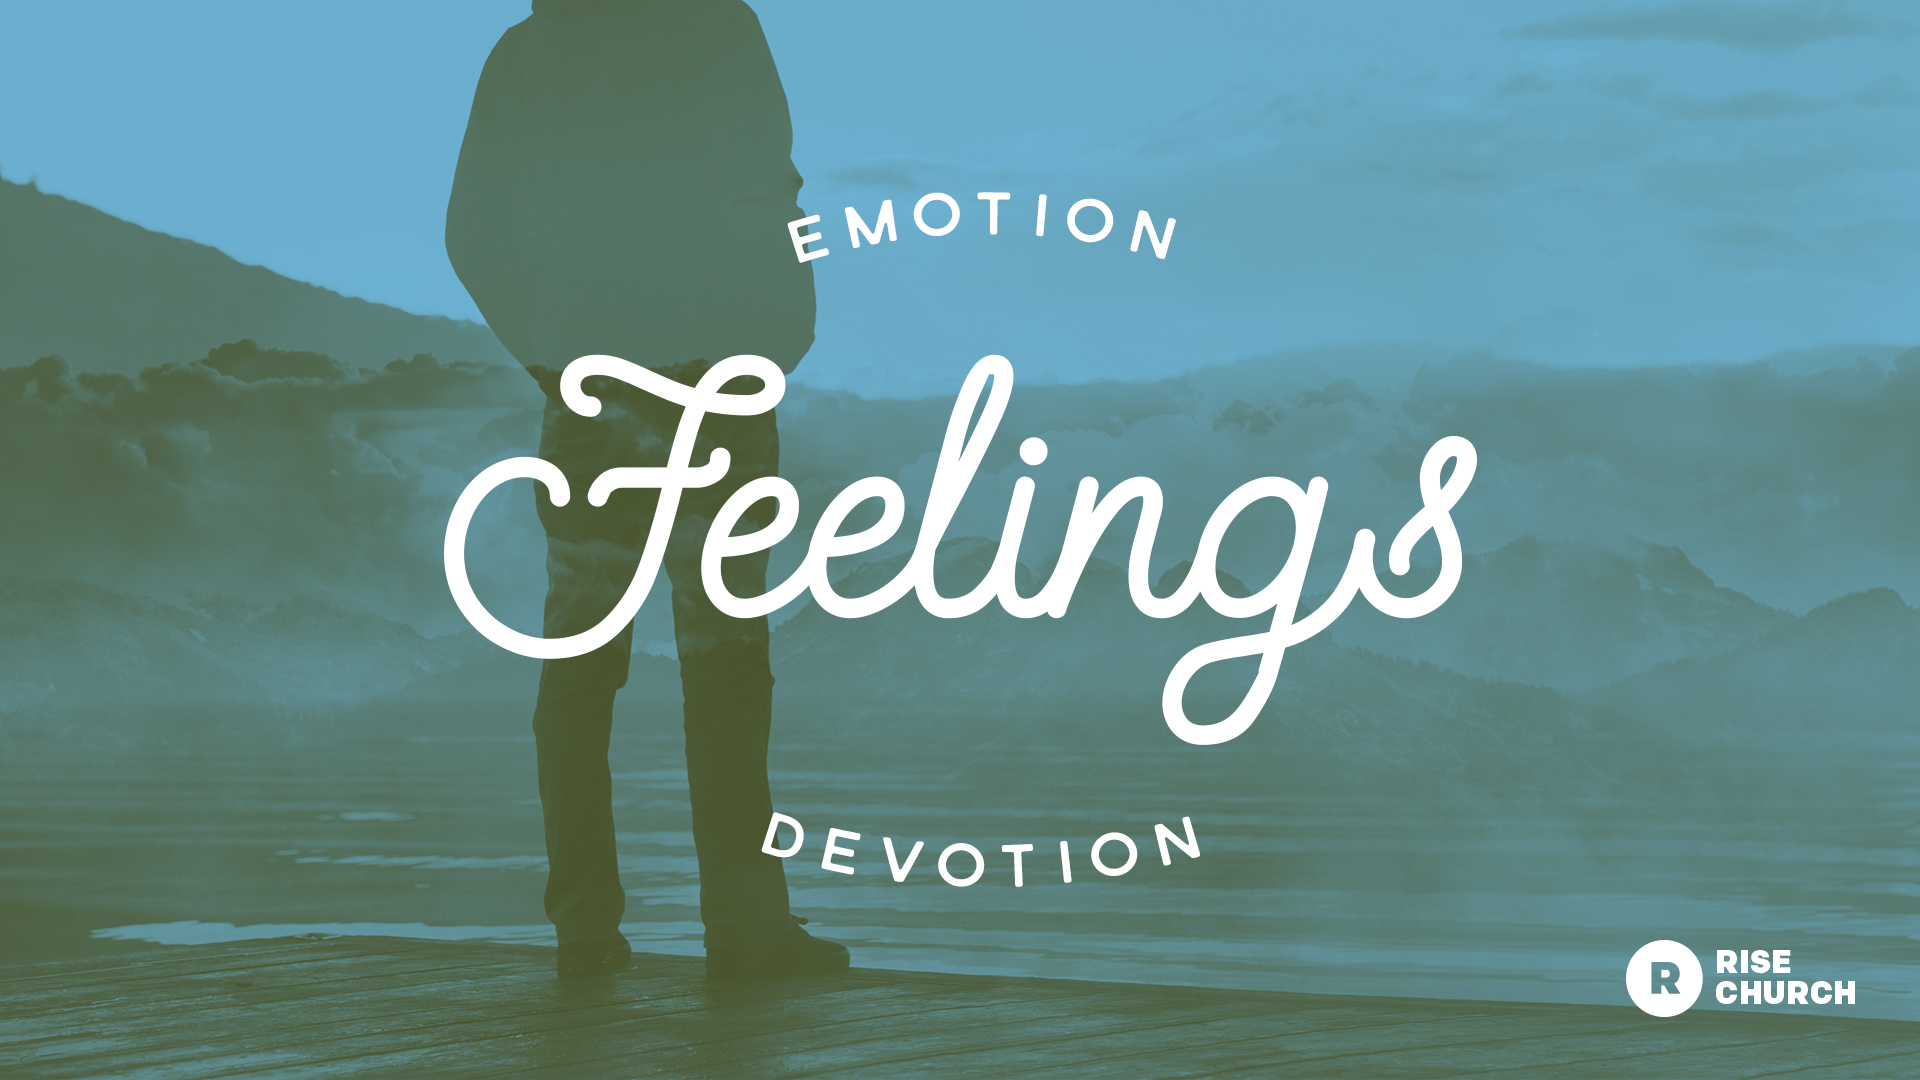 Visalia Churches Sermon Feelings Rise Church